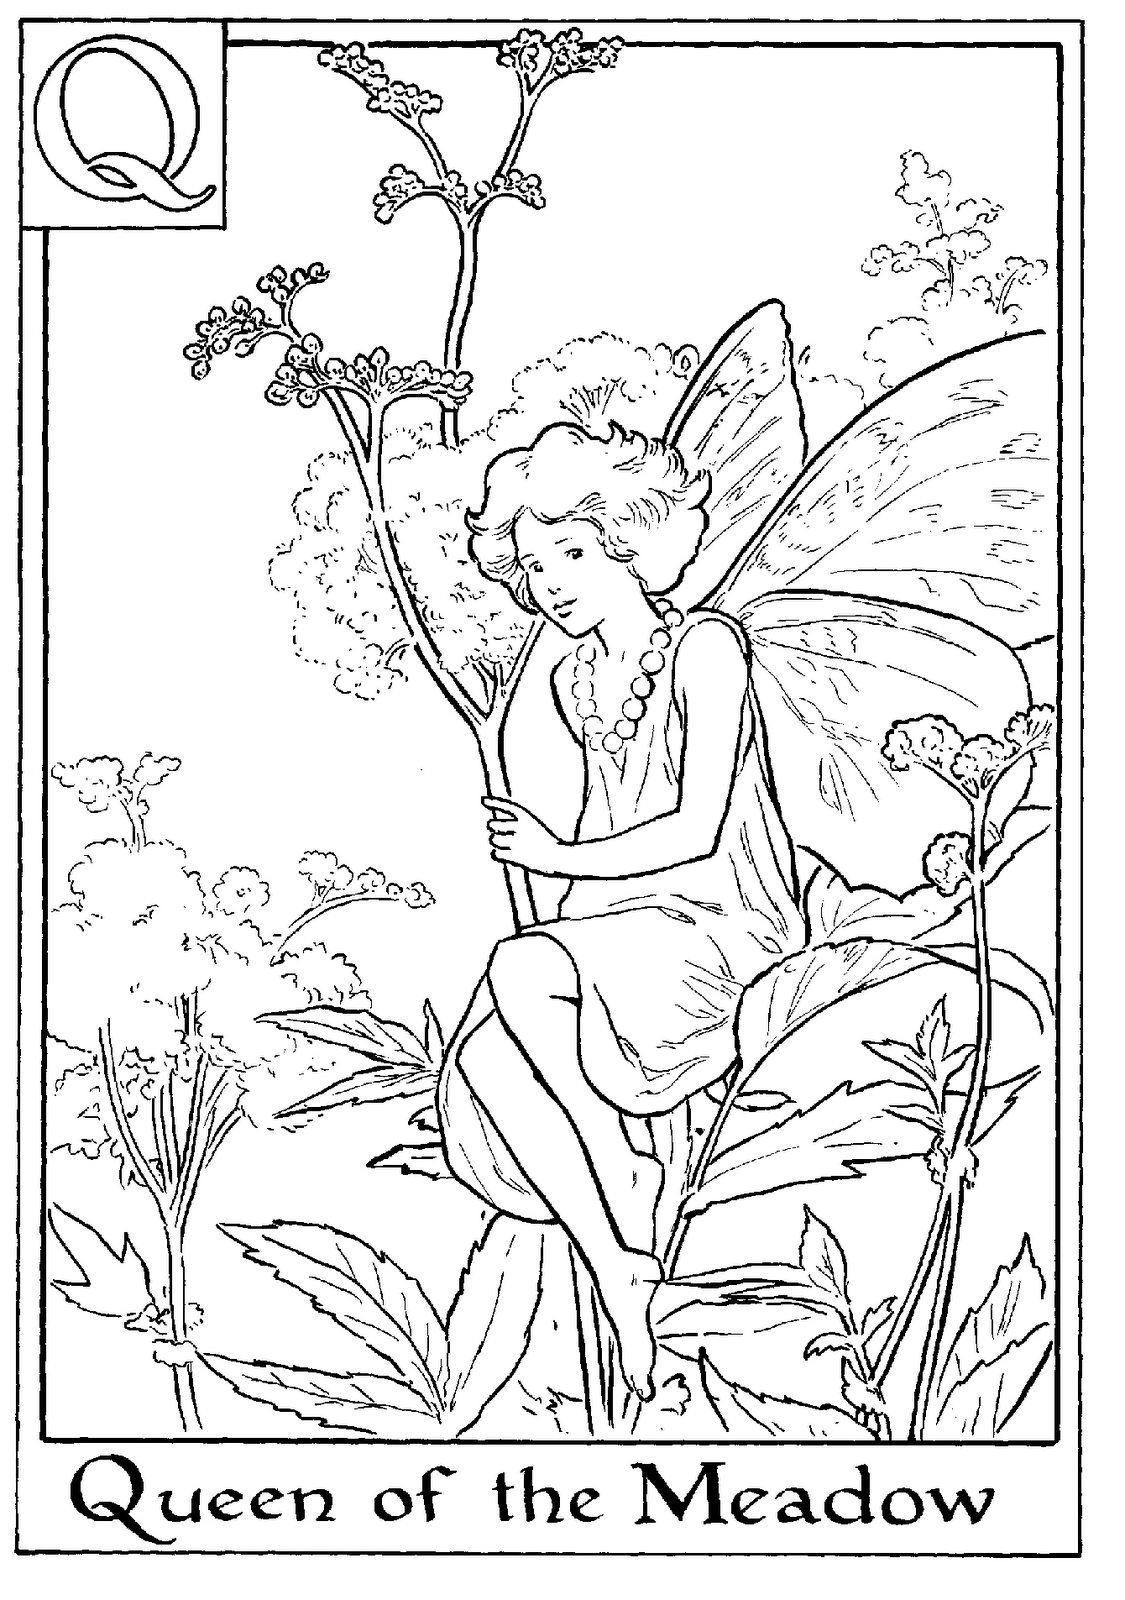 letter q for queen of the meadow flower fairy coloring page alphabet coloring pages alphabet flower fairies on do coloring pages - Coloring Pages Fairies Flowers